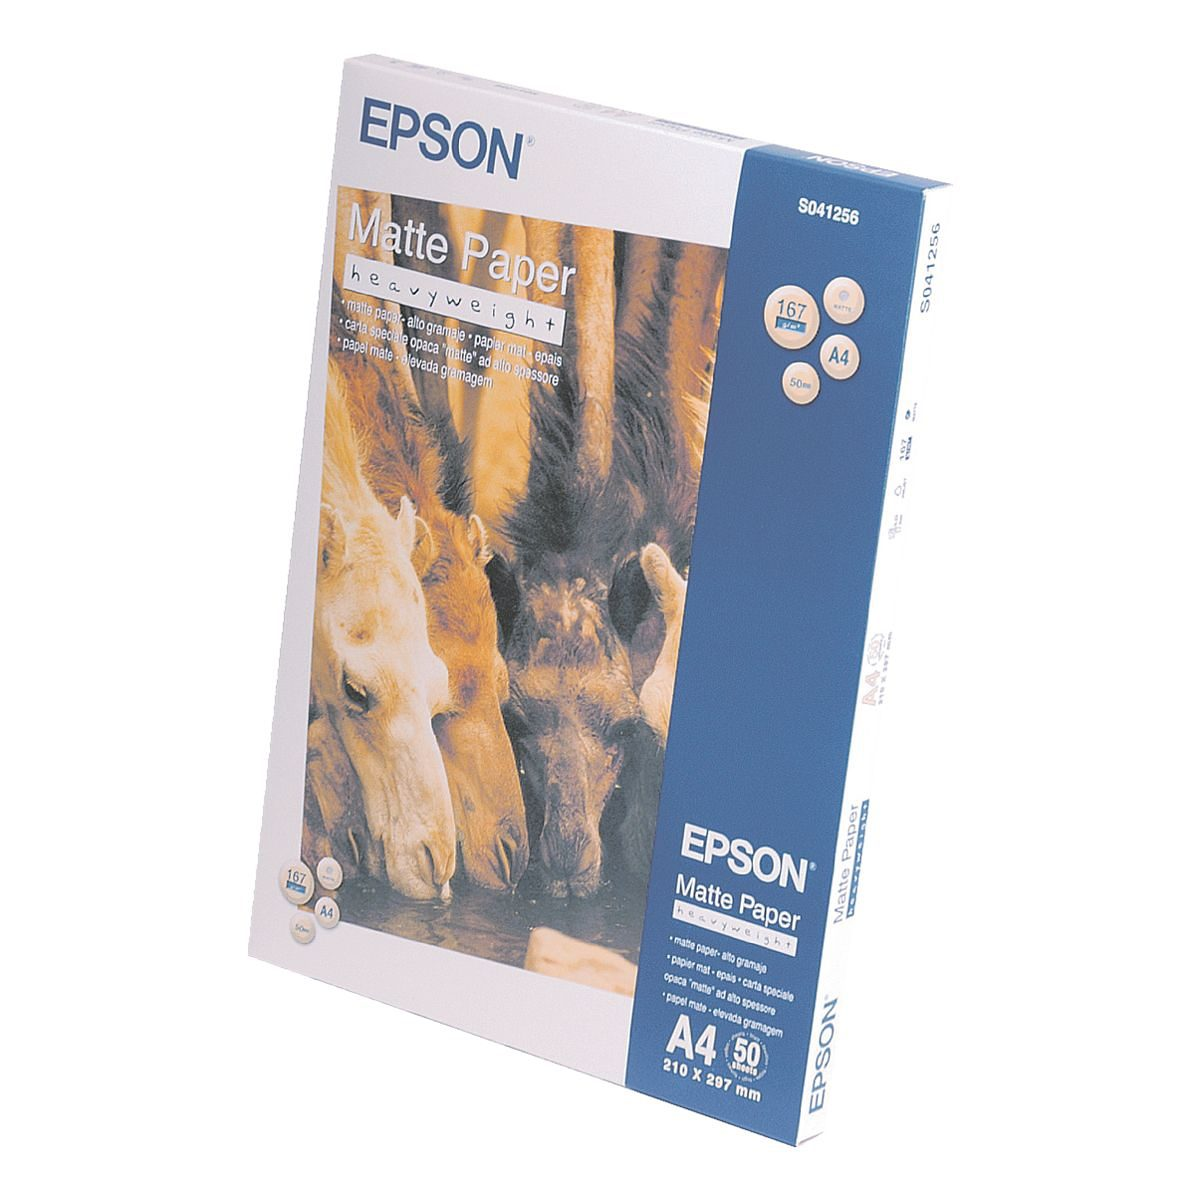 Epson Fotopapier »Heavy weight«